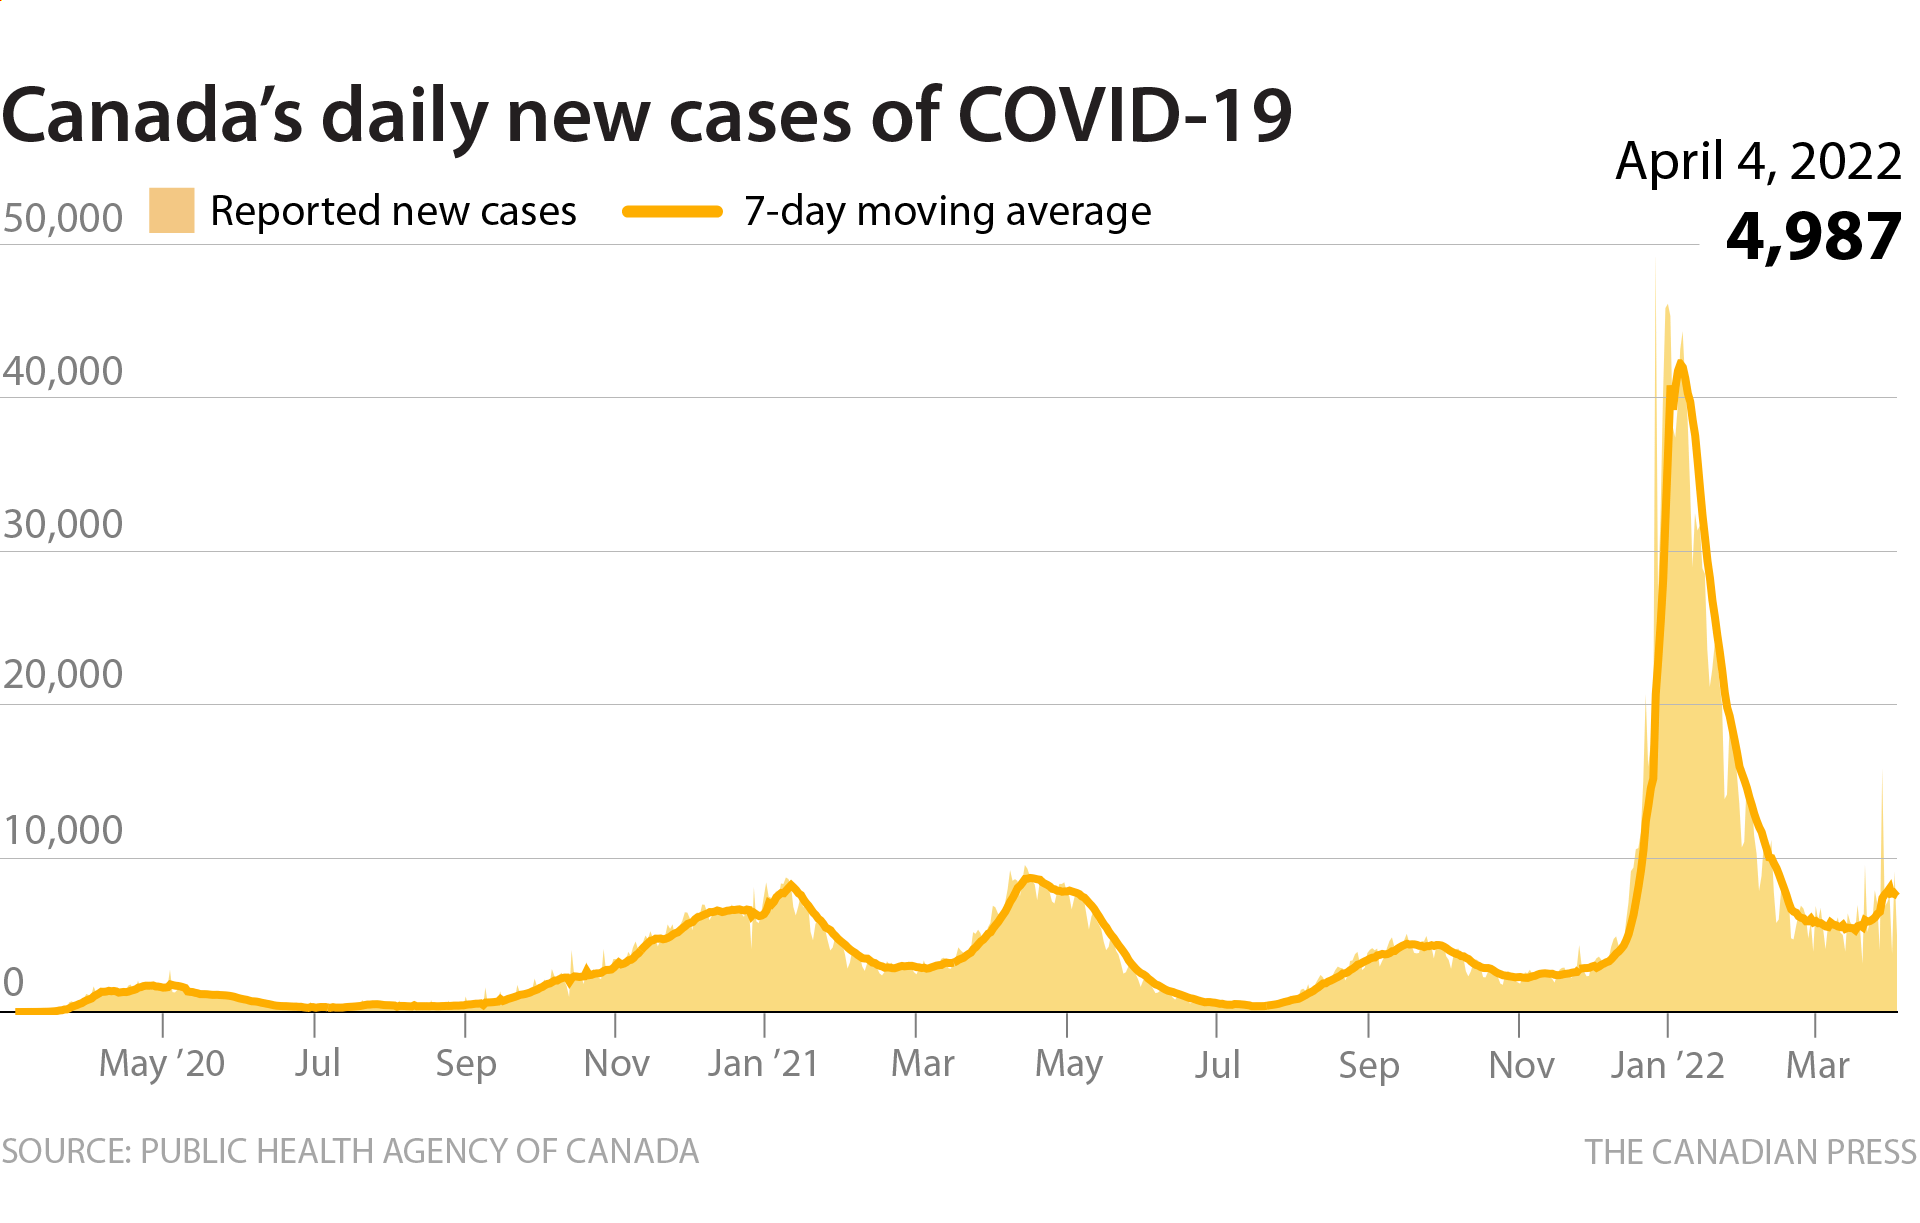 COVID-19 NEW DAILY CASES IN CANADA